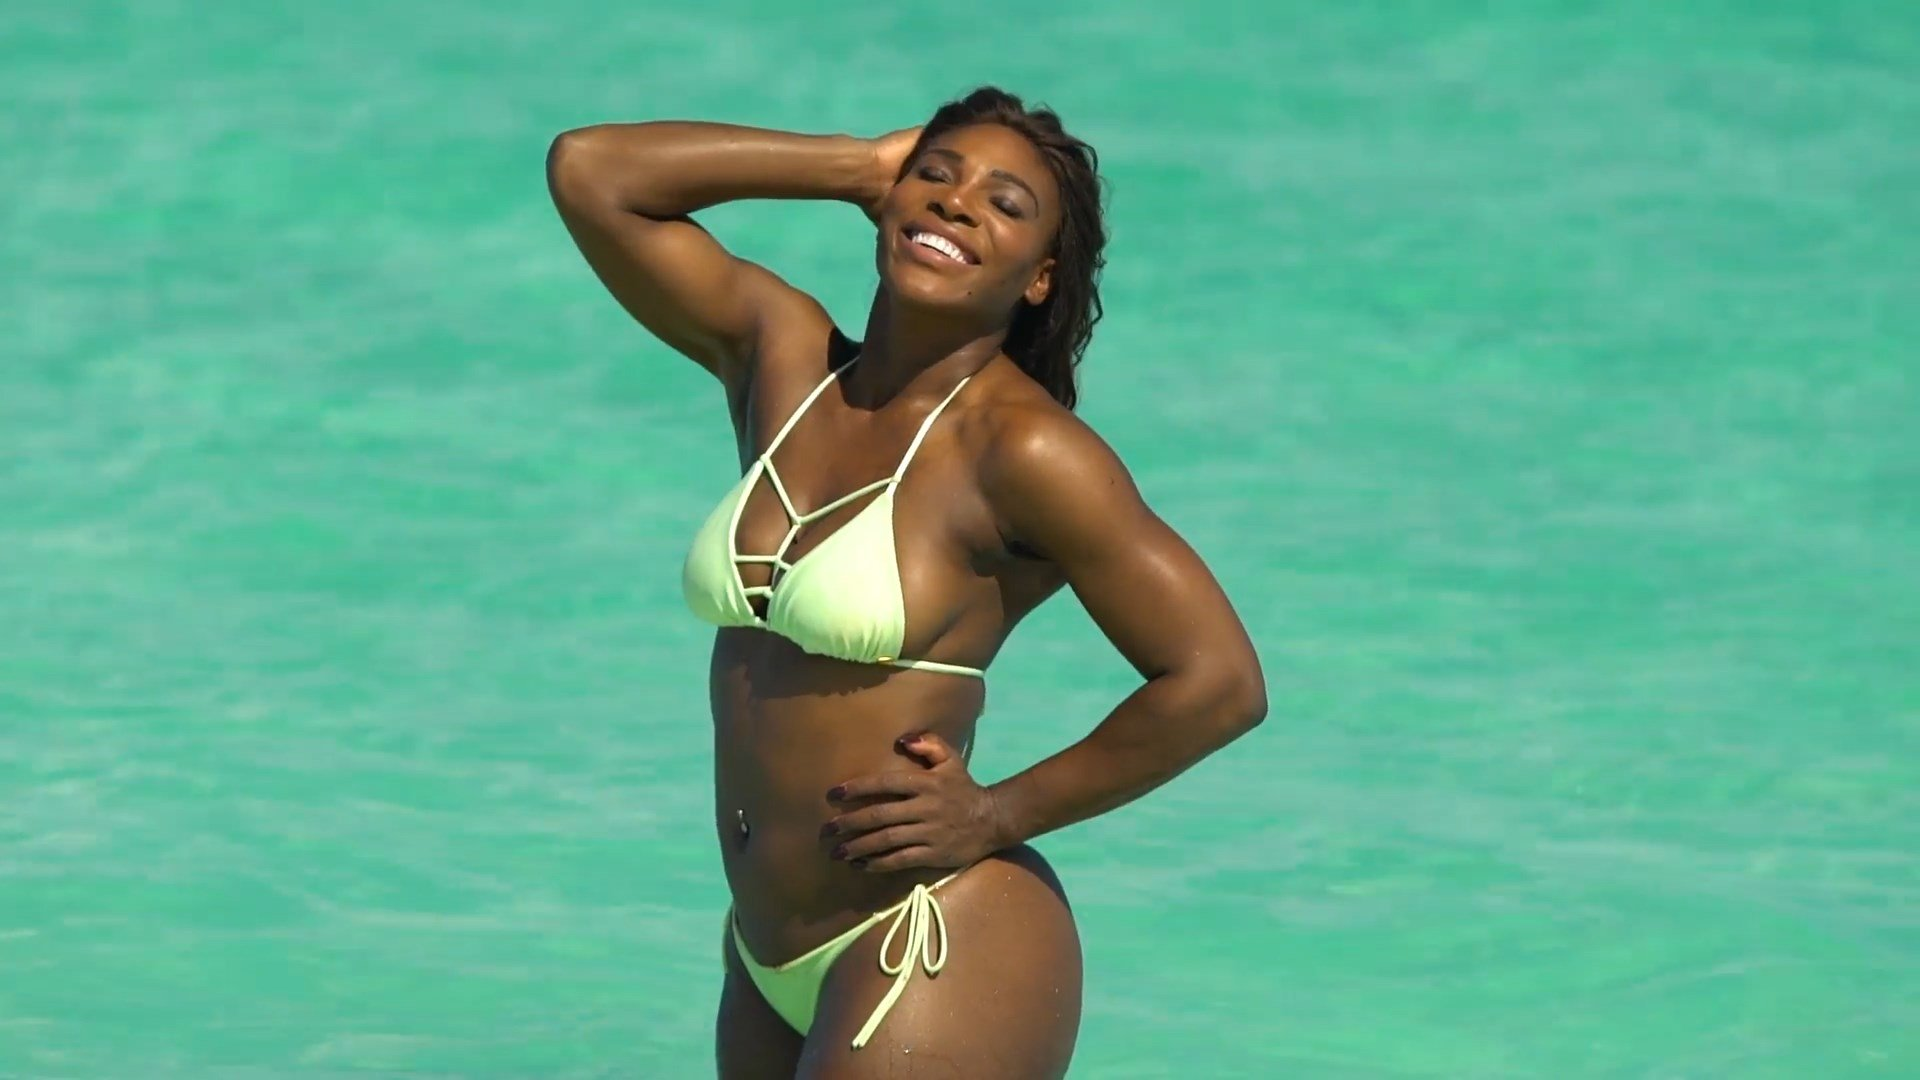 Serena Williams Sings I Touch Myself Topless For Breast Cancer Awareness